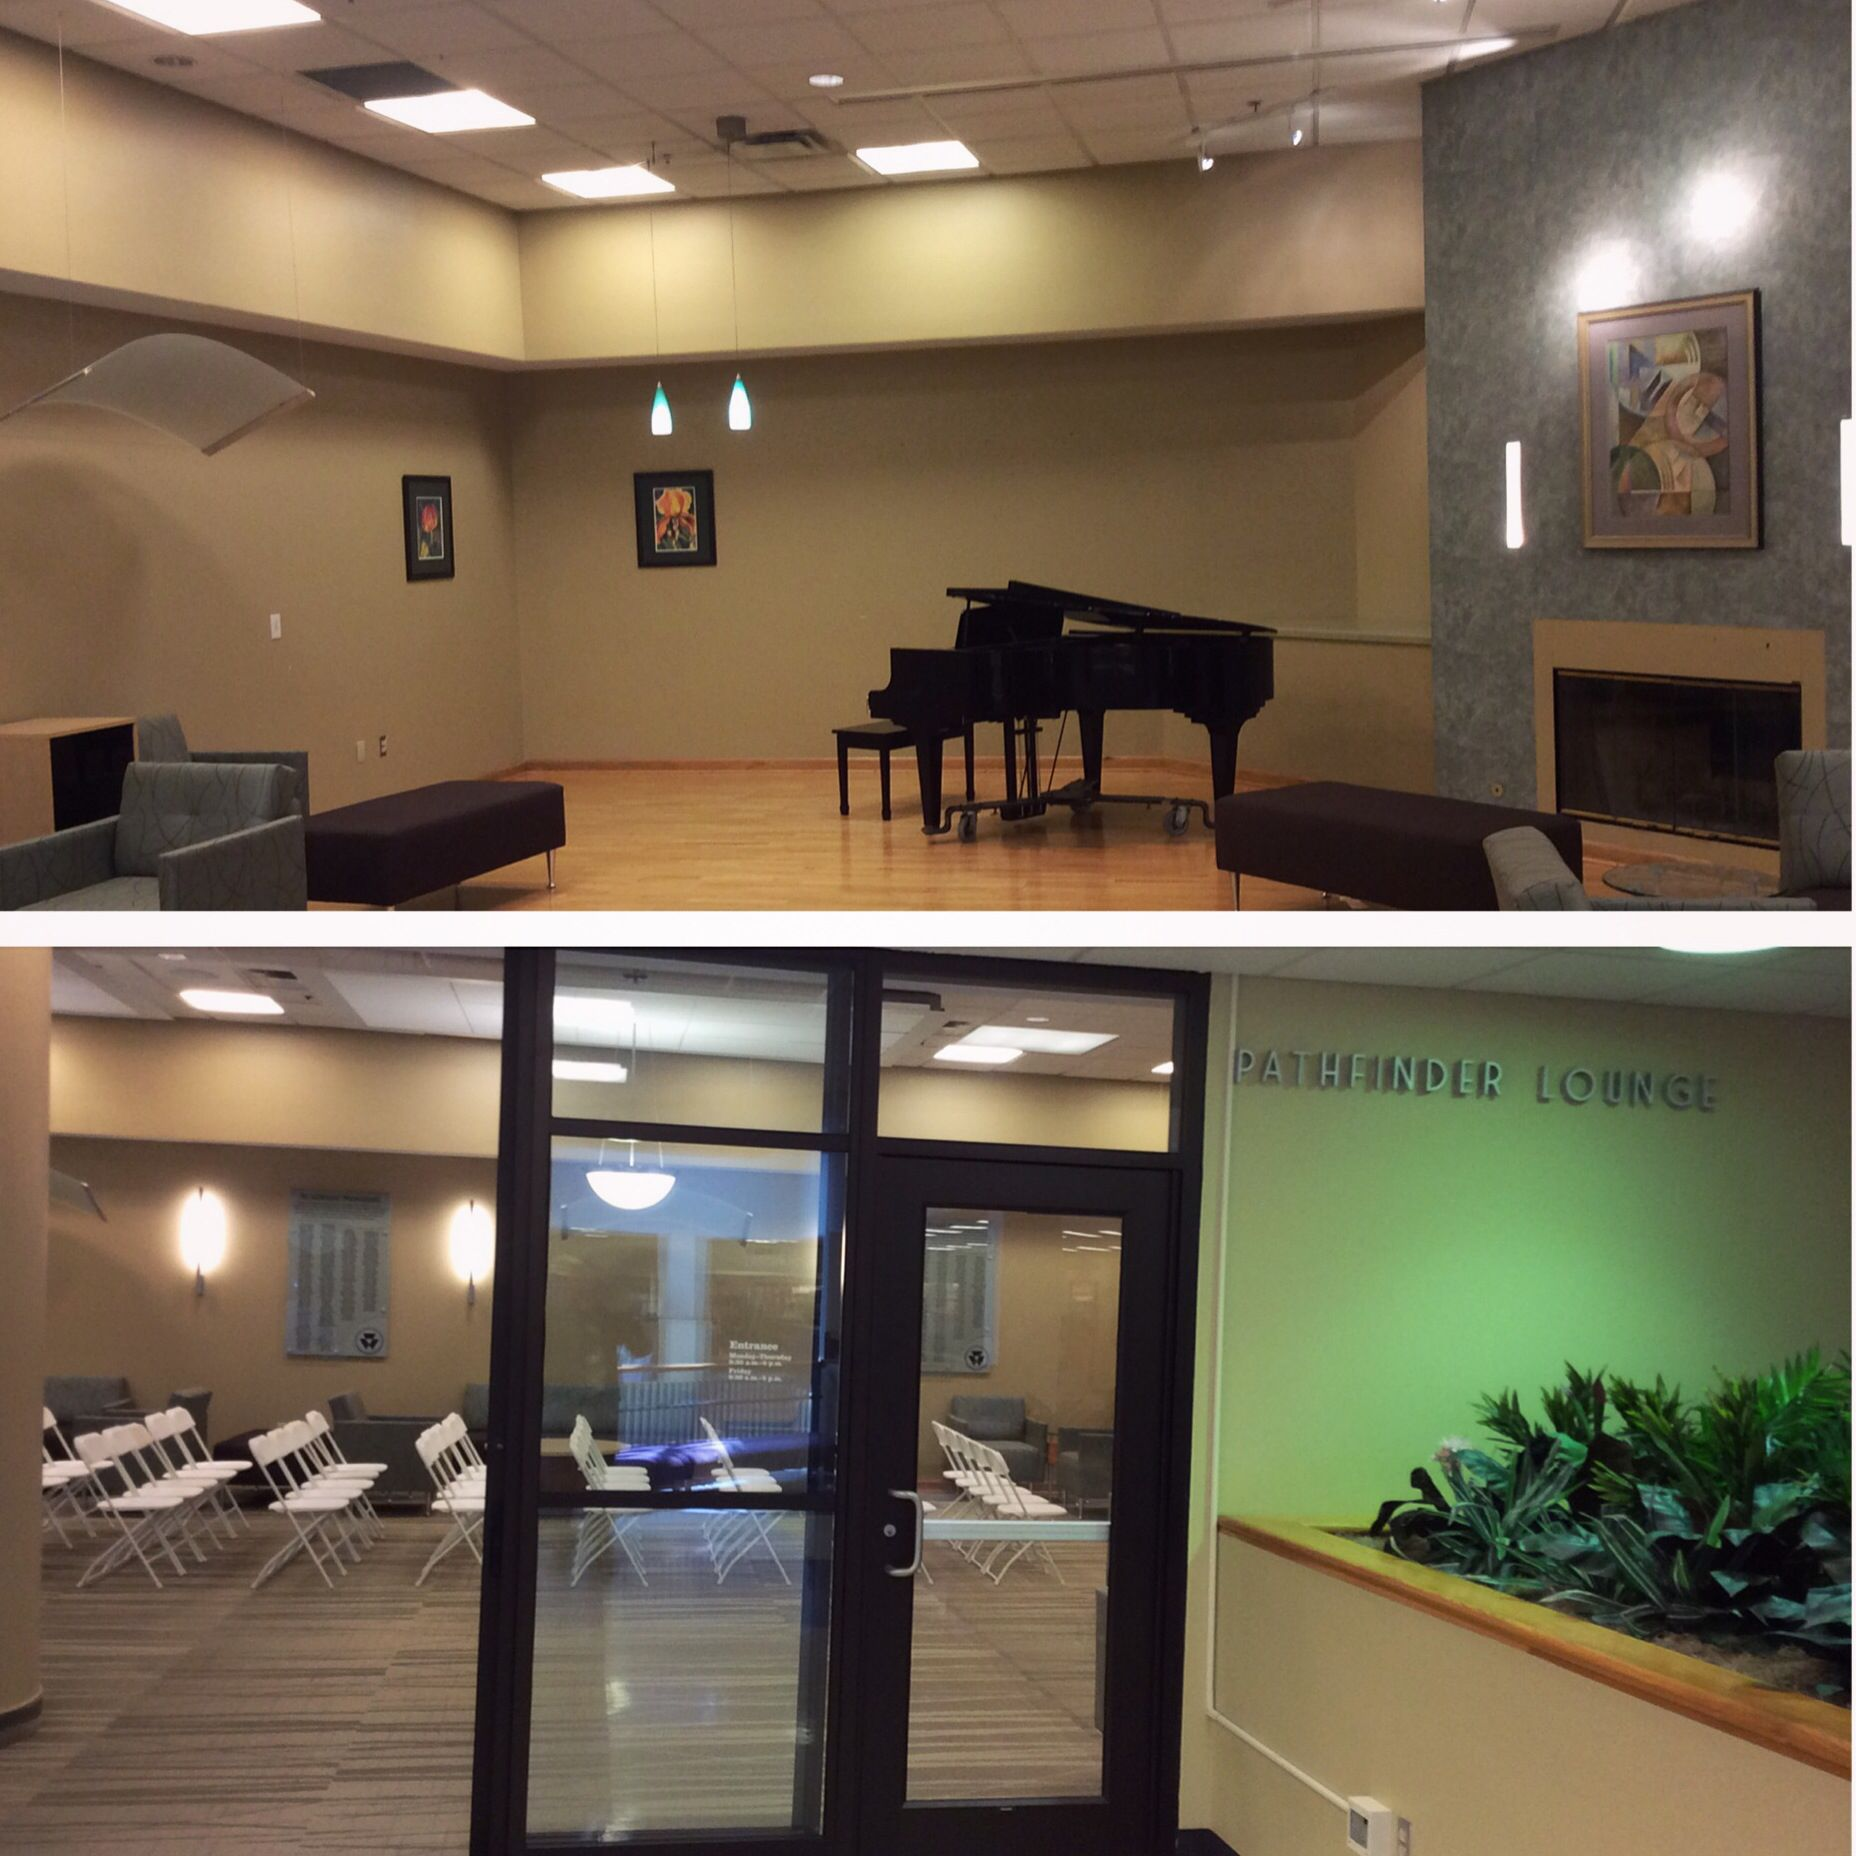 Pathfinder lounge is located on the 1st floor of the